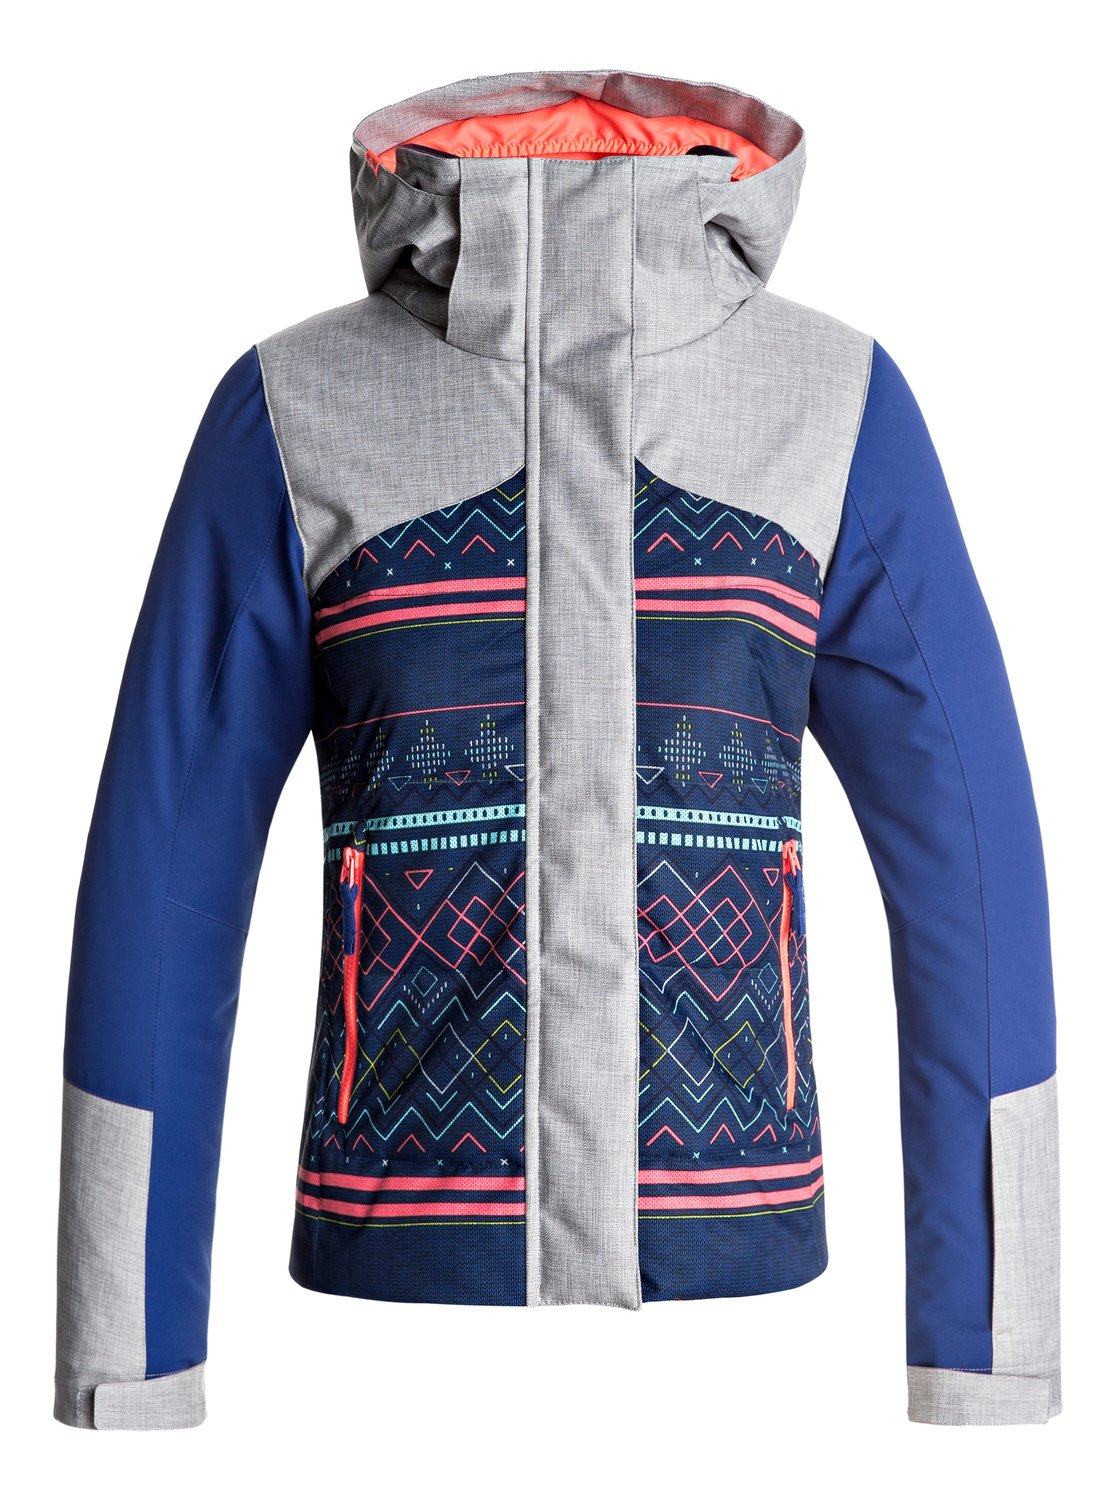 Flicker - Veste de snow pour Fille - Roxy